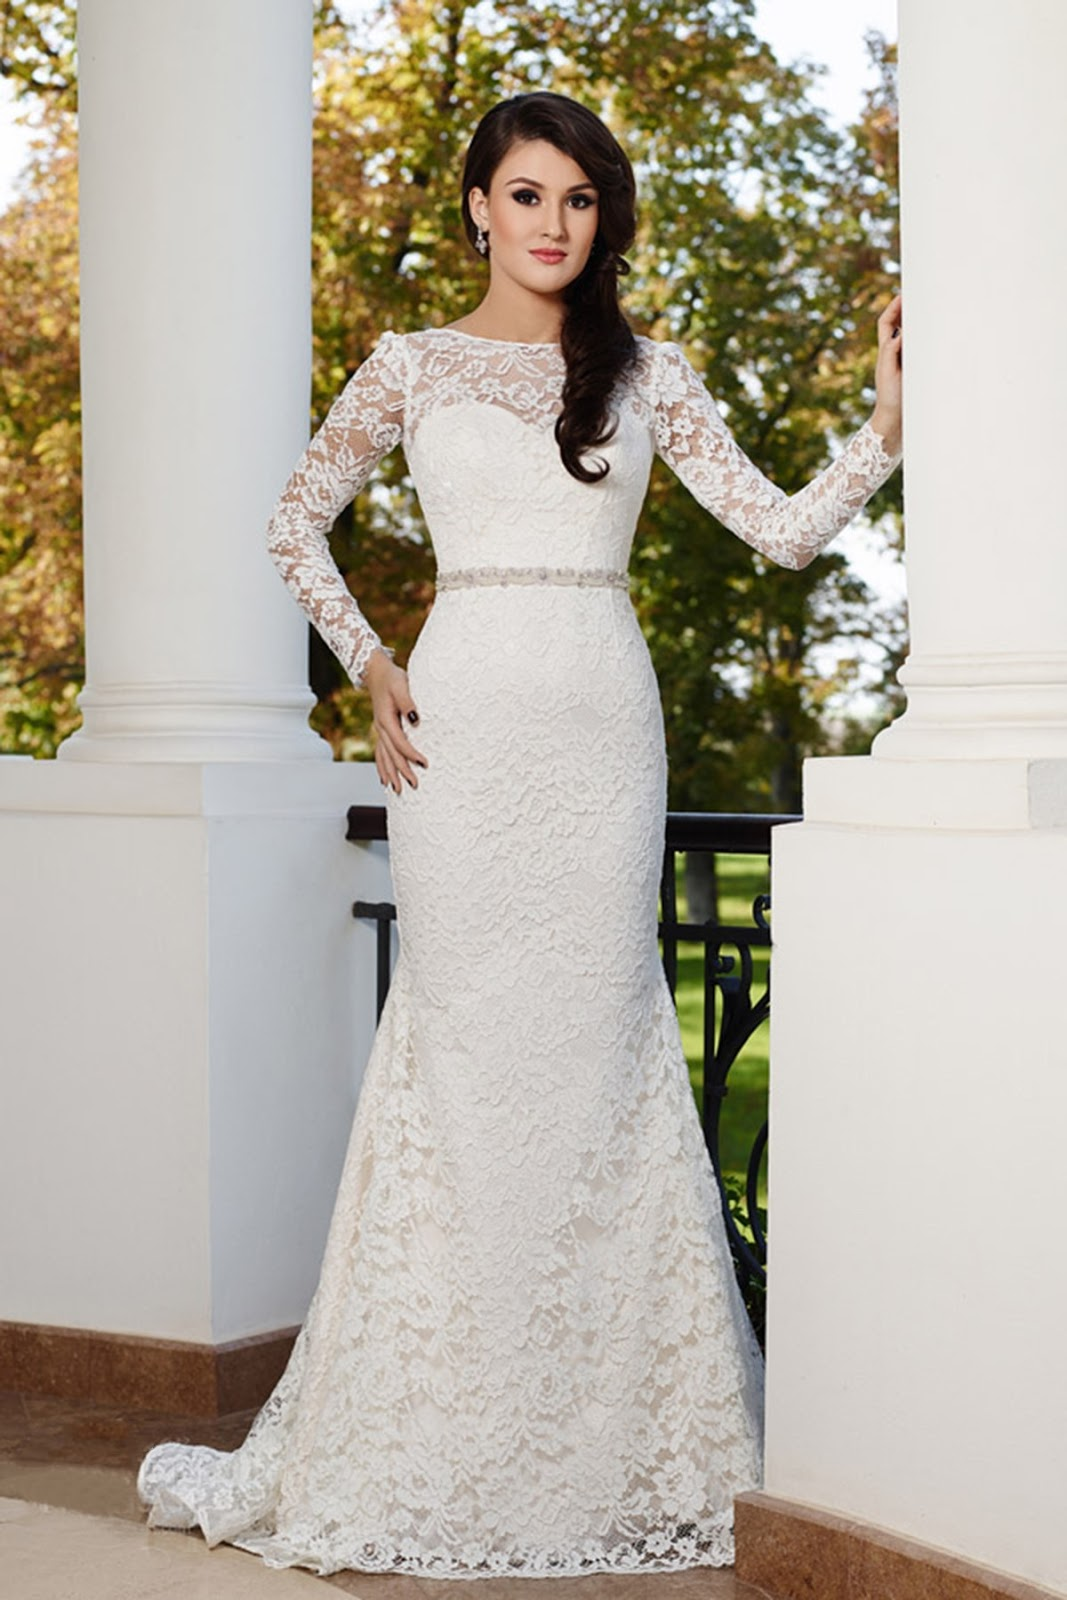 Full Sleeve Lace Wedding Dress 85 Great Lace wedding Dresses from